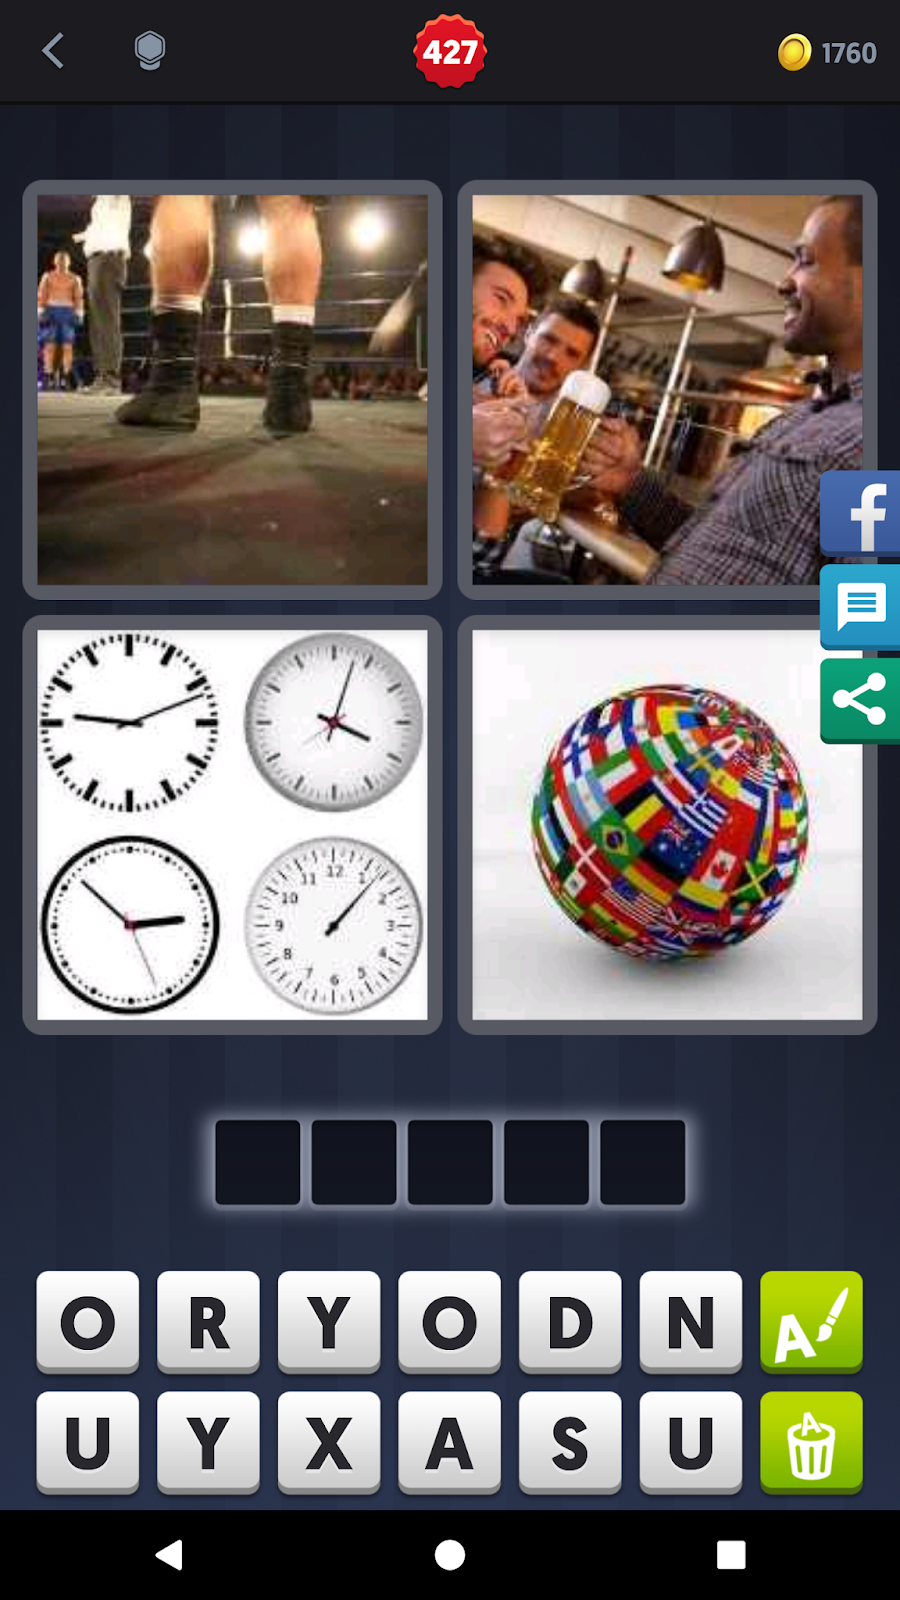 4 Pics 1 Word Answers Solutions: LEVEL 427 ROUND